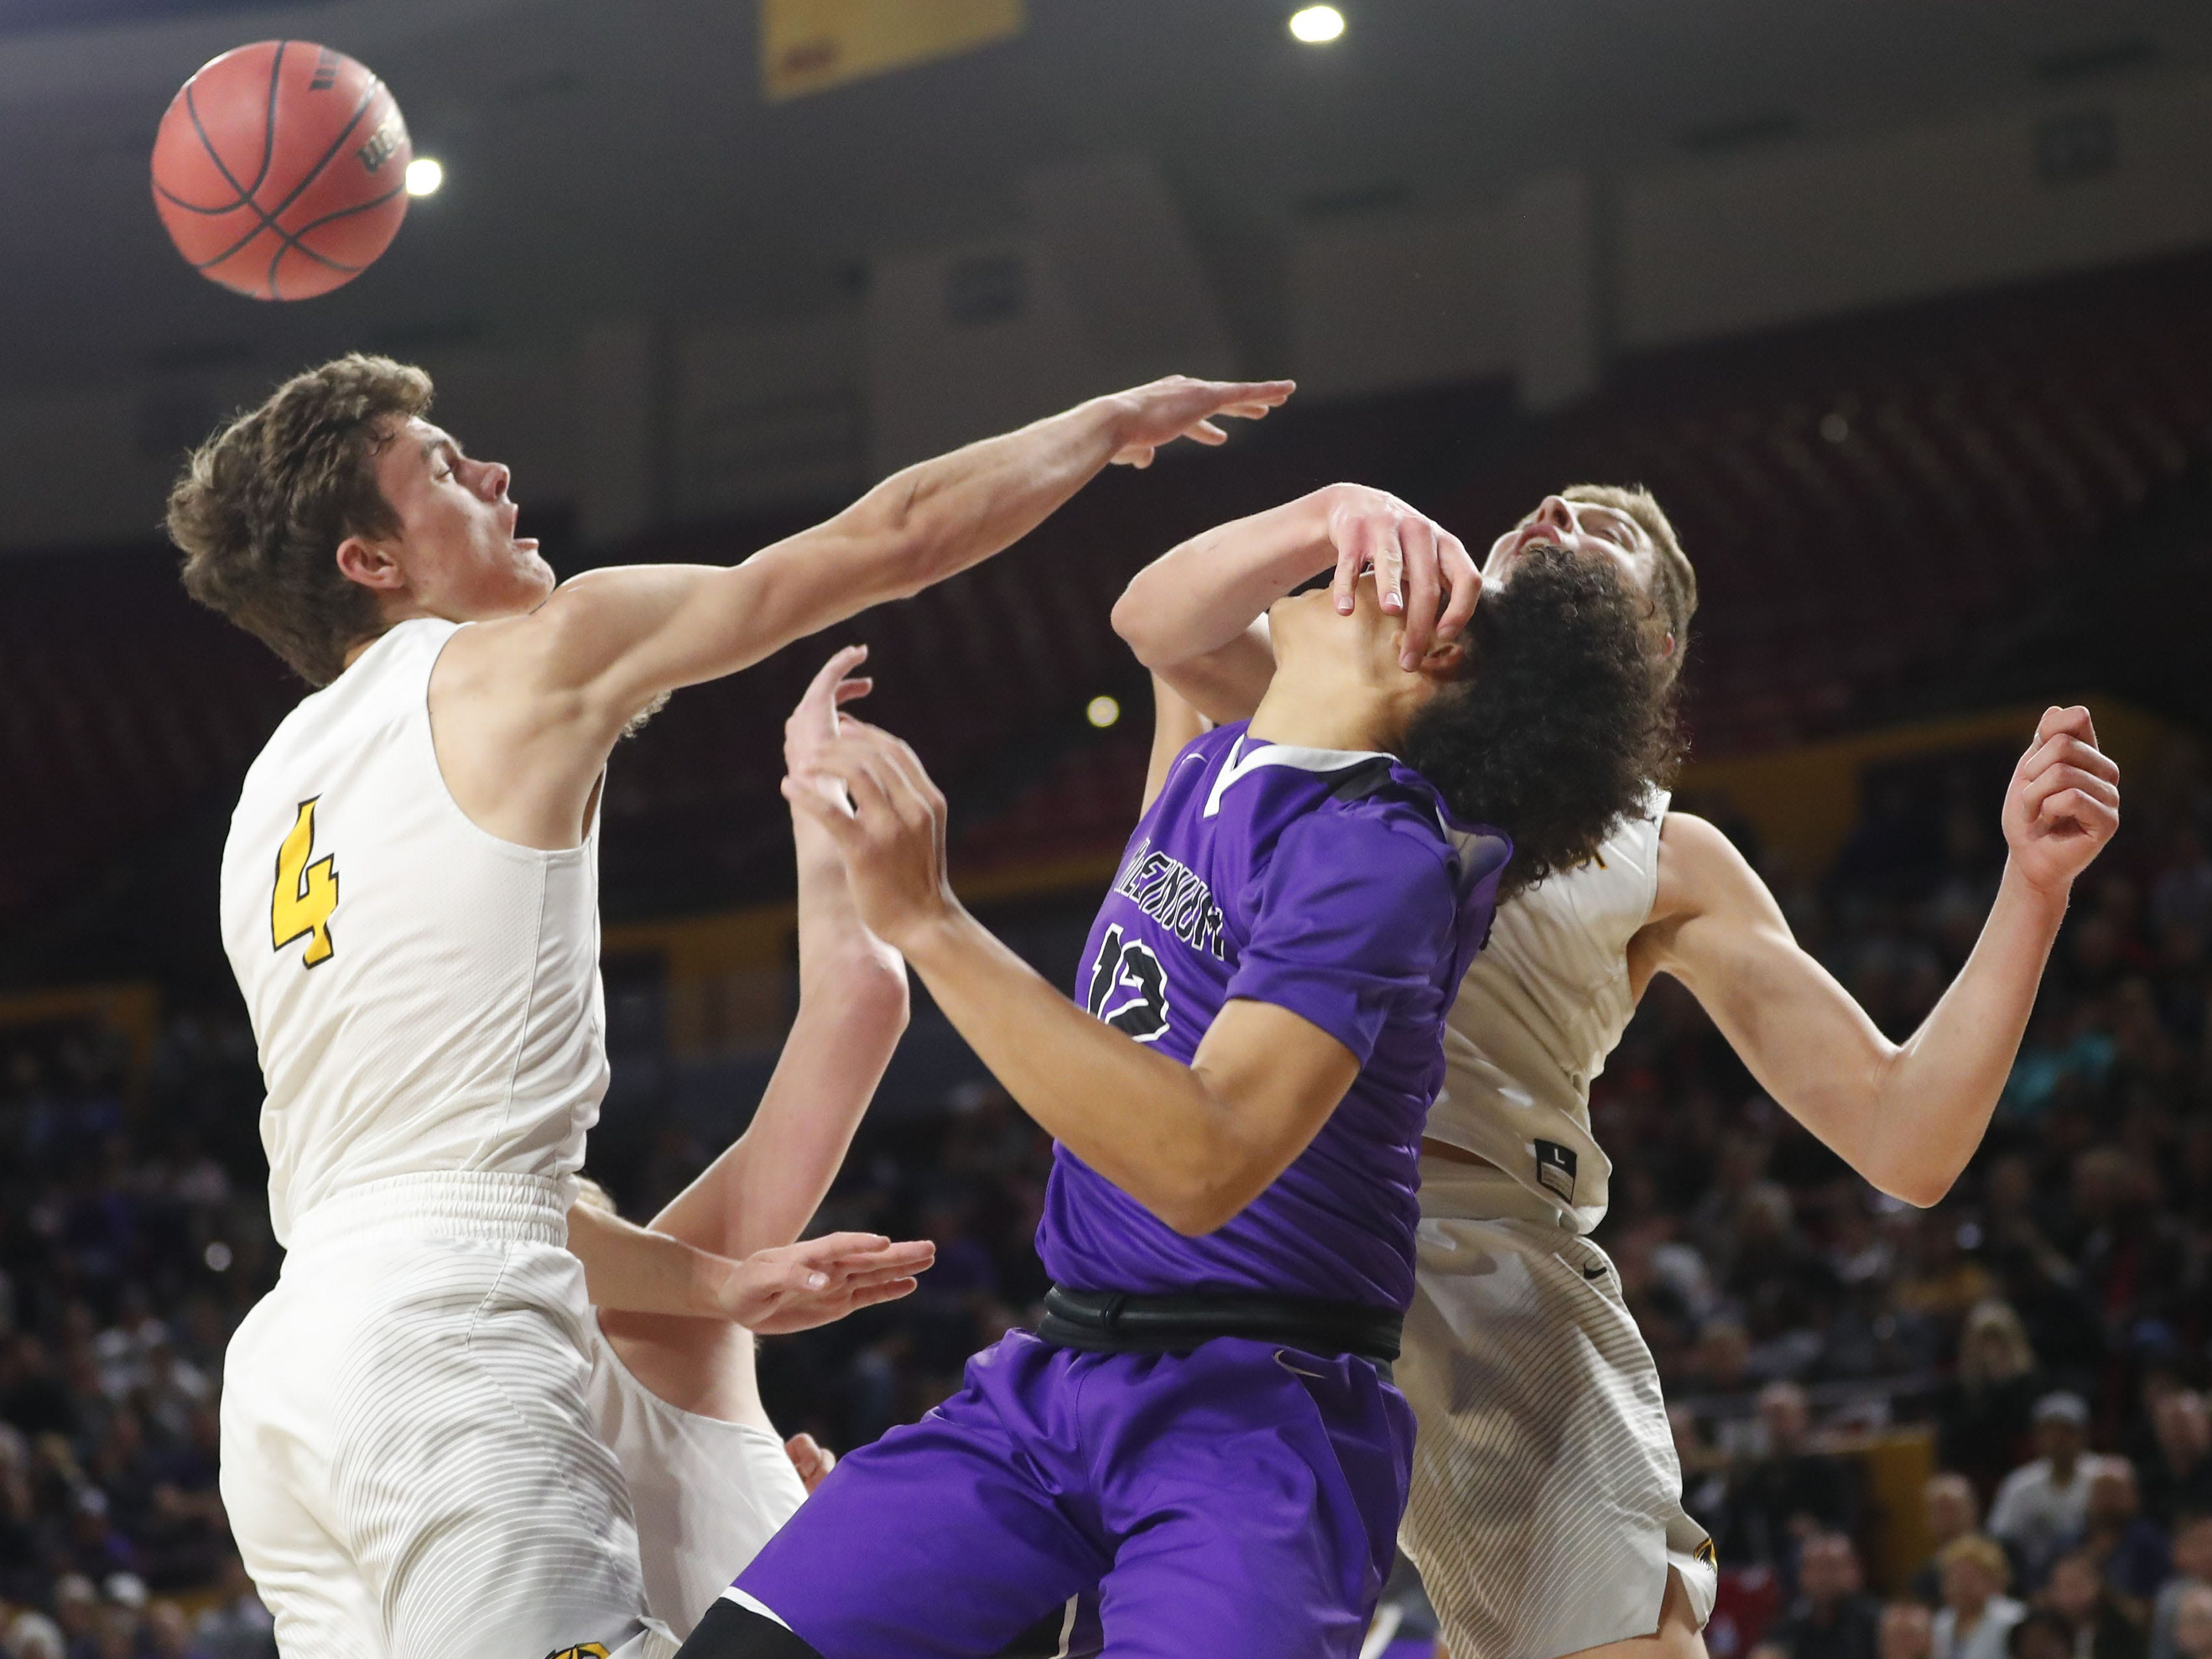 Gilbert's Carson Towt (33) fouls Millennium's Cameron Wilder (12) during the Boys State 5A Championship game in Tempe, Ariz. Feb. 25, 2019.